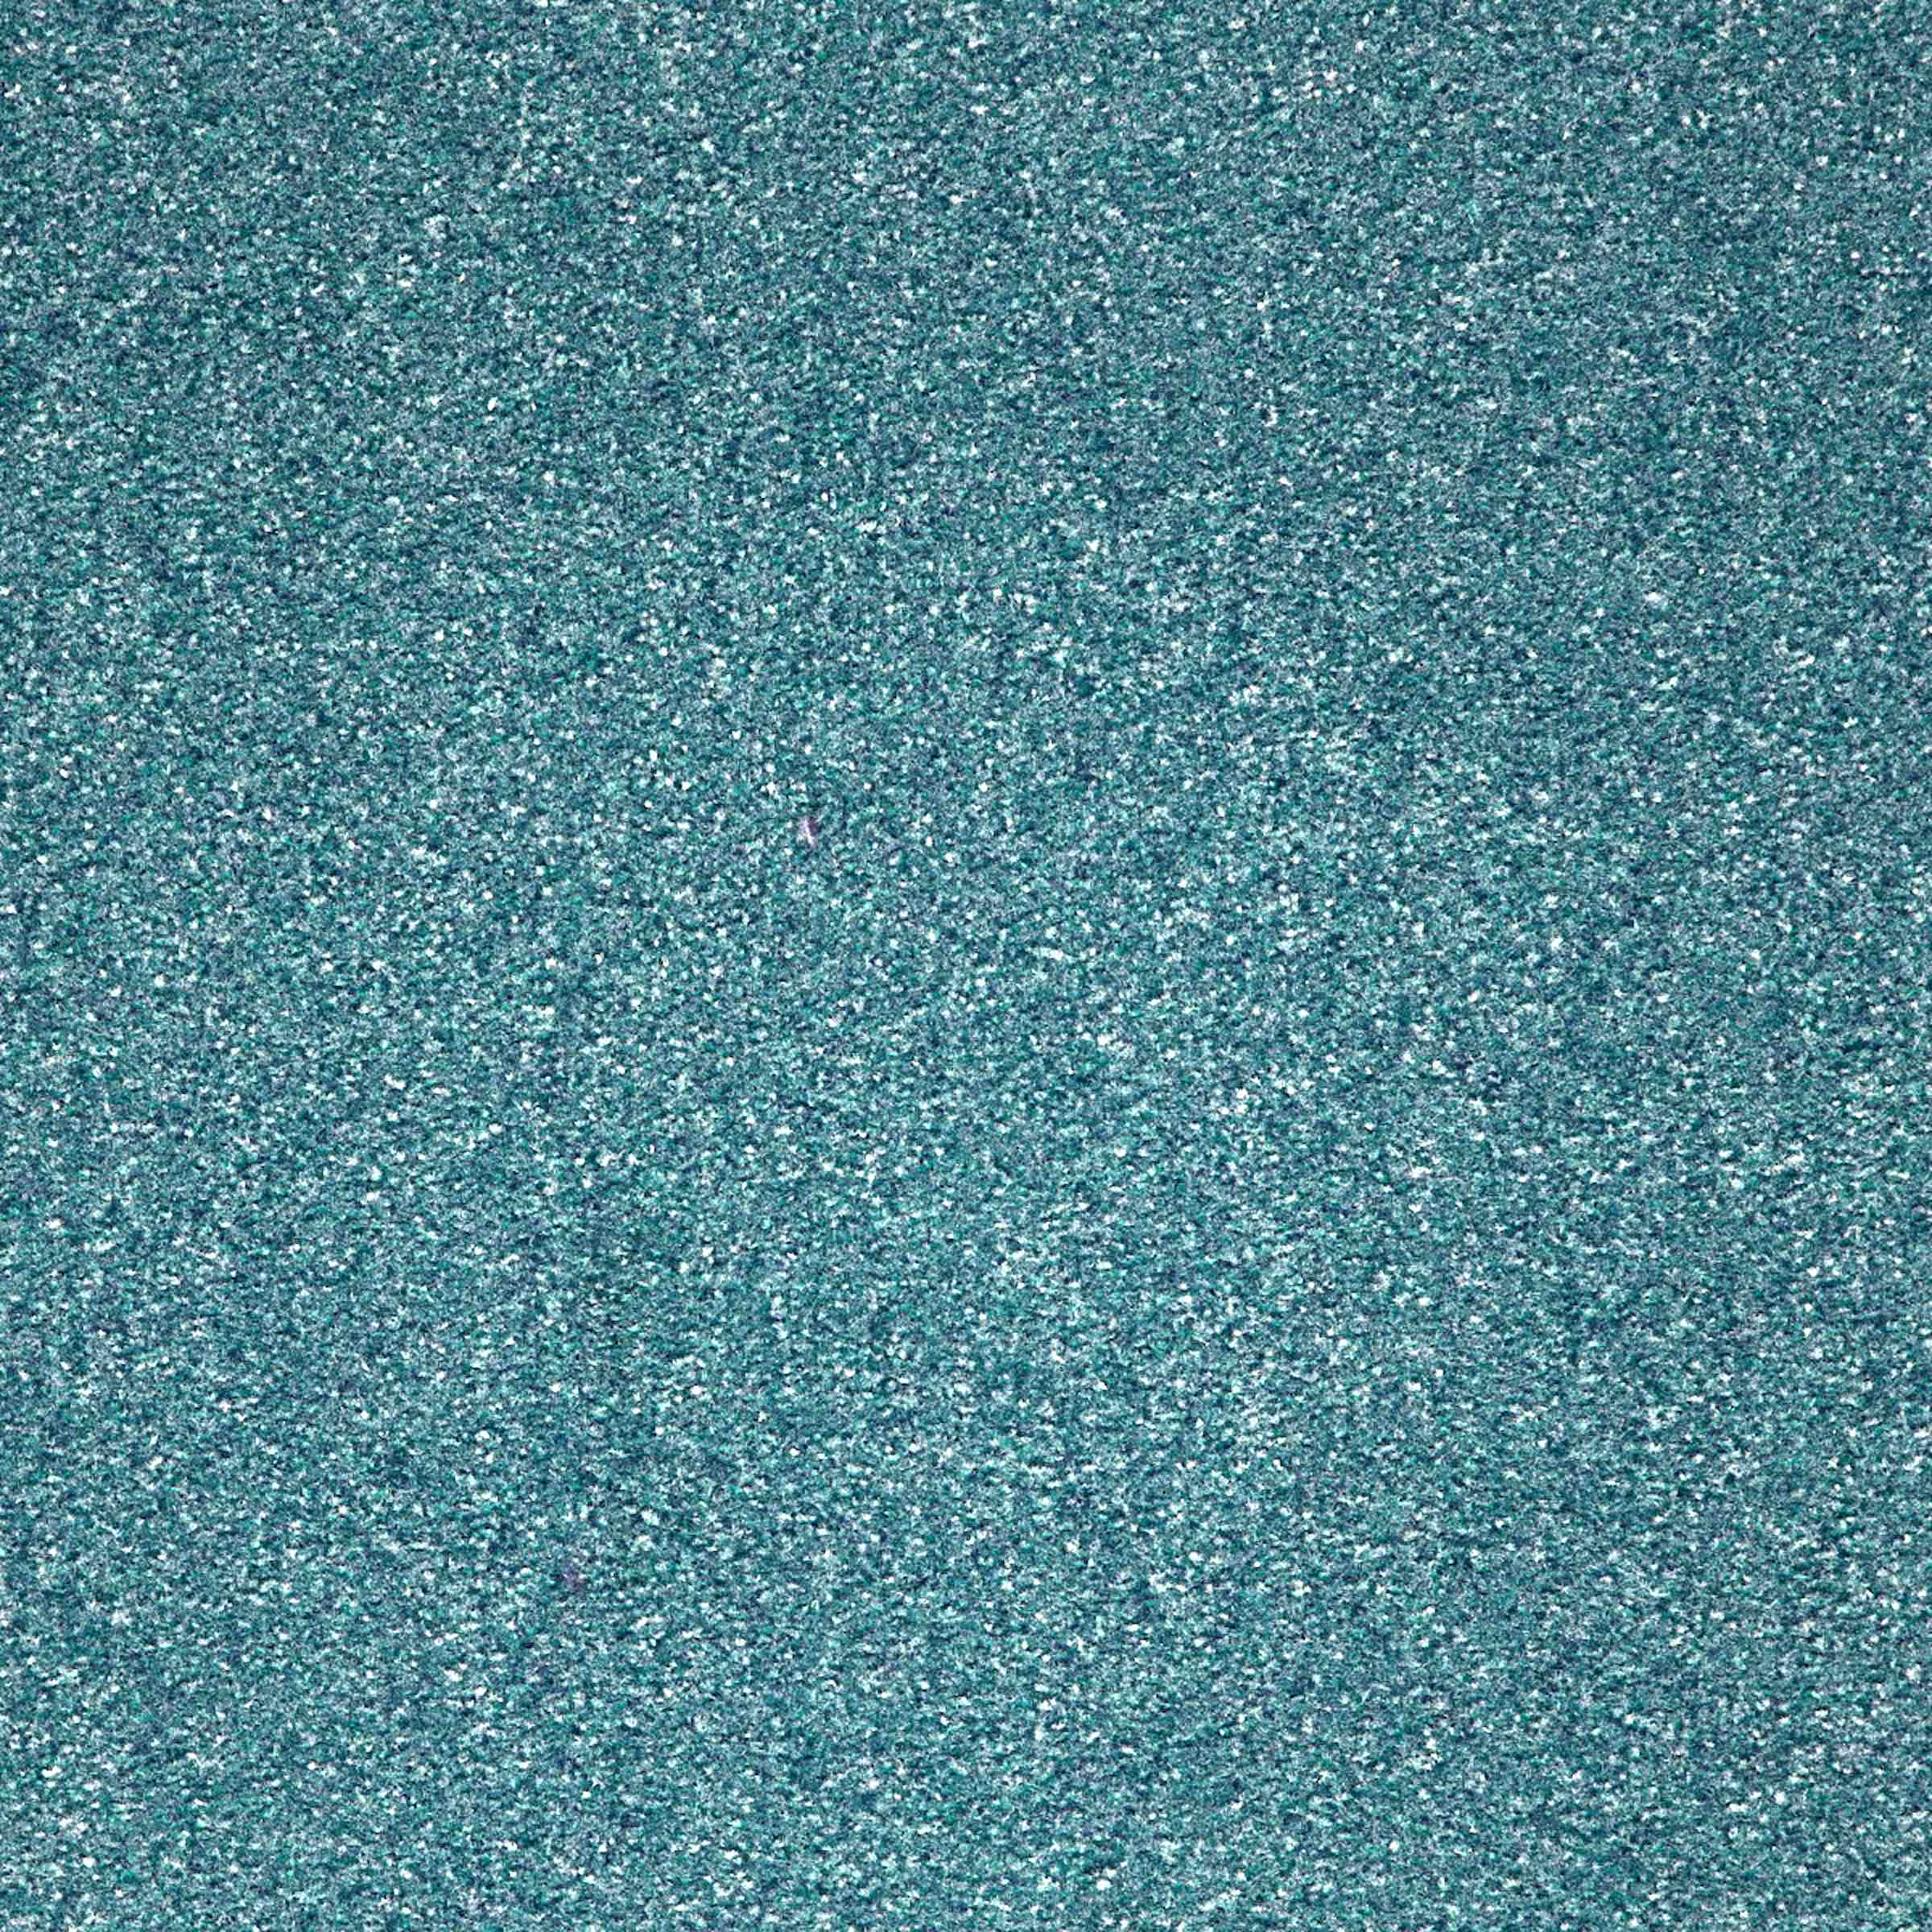 Workspace Cut Pile | Nordic Green, 5011C | Paragon Carpet Tiles | Commercial Carpet Tiles